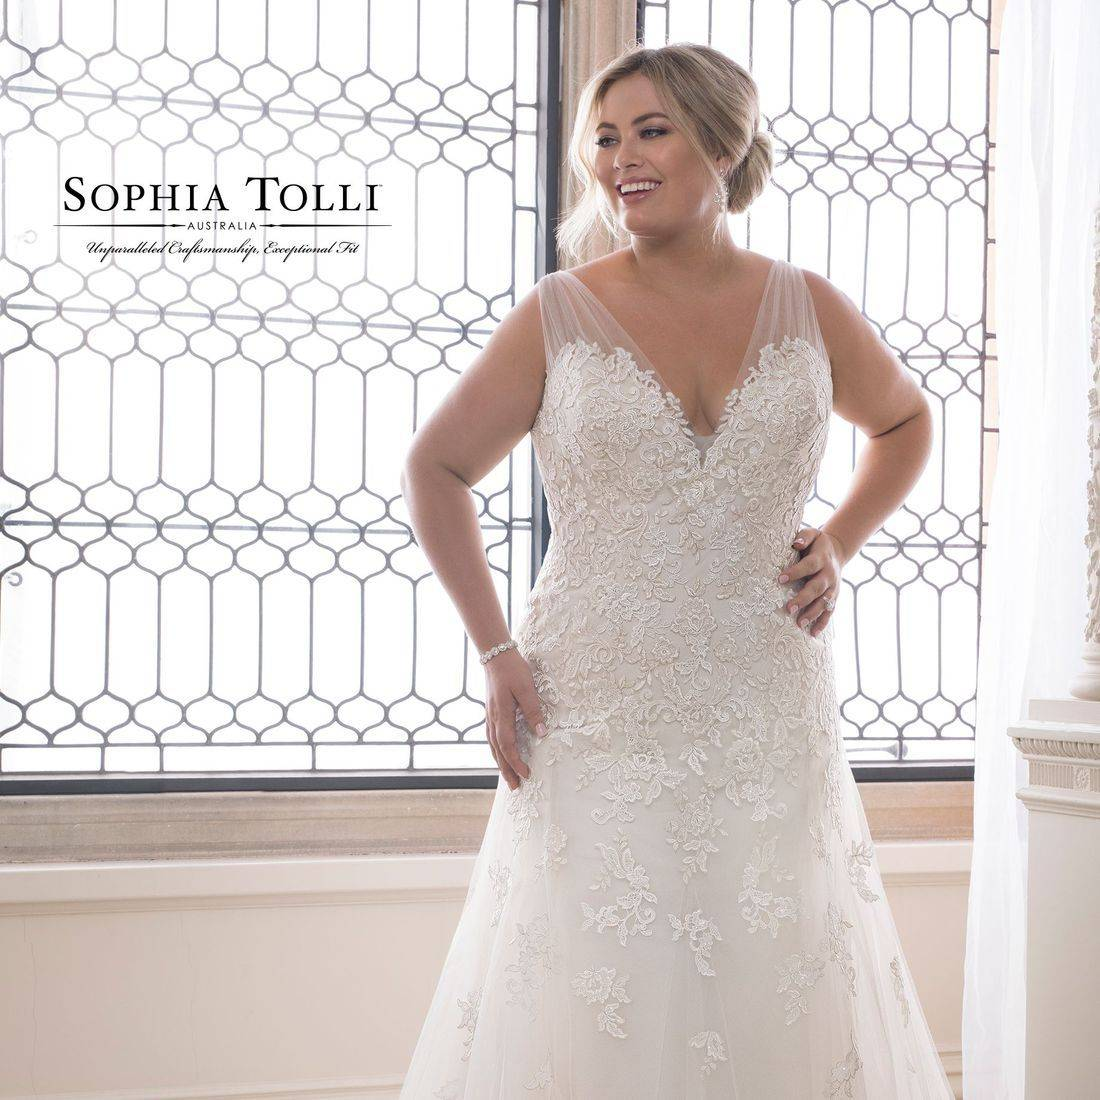 plus size, plus size wedding dress, sophia tolli, sophia tolli wedding dress, trumpet wedding dress, sweetheart neck, sparkle, fitted wedding dress, chapel train, lace, dipped neck,